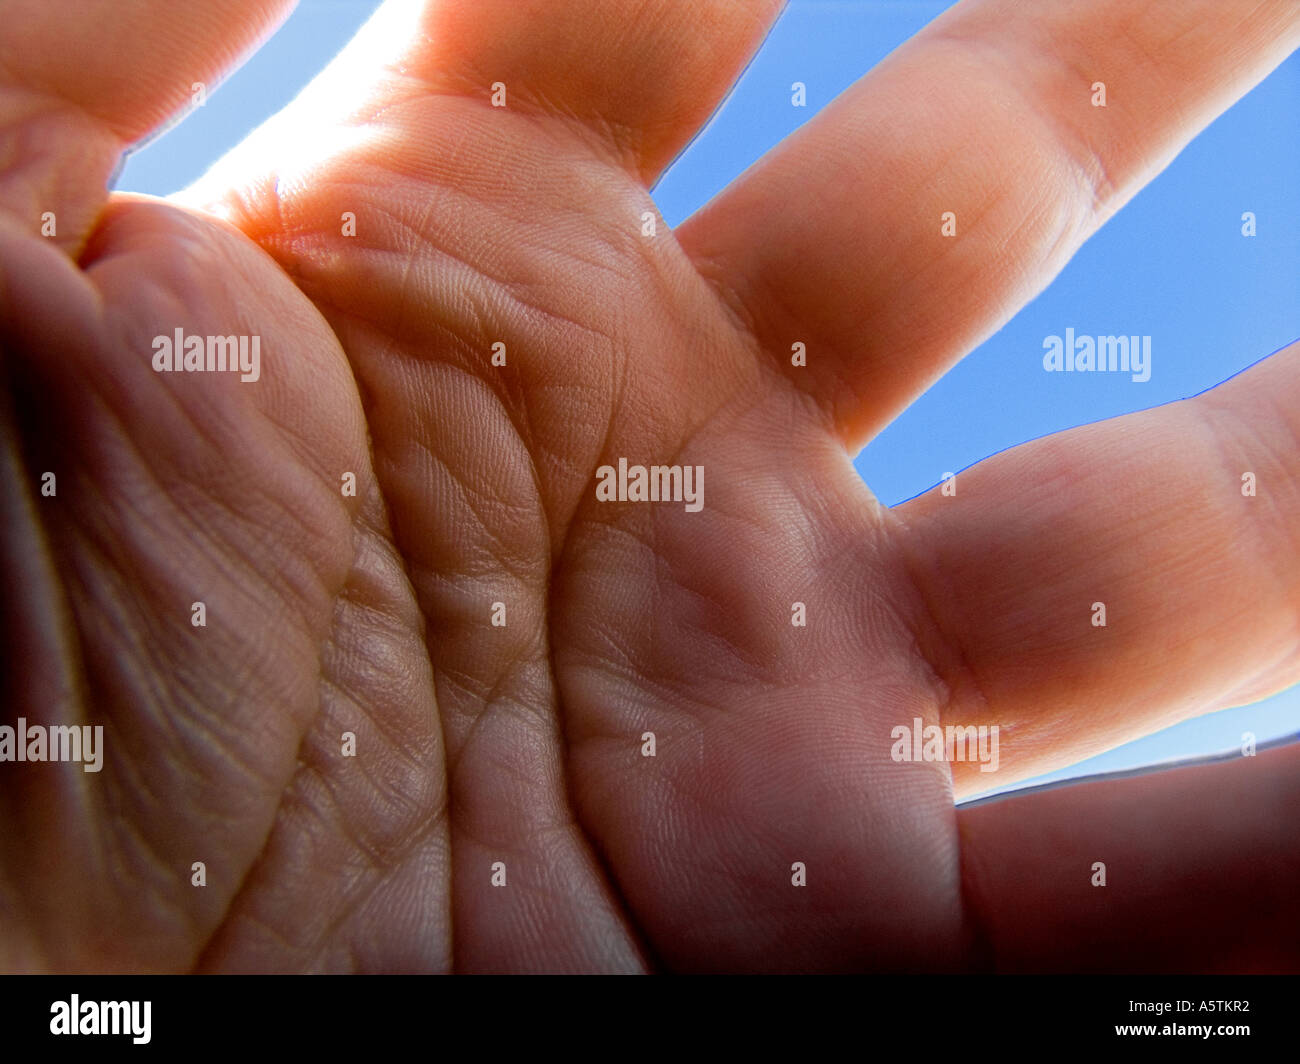 Close up of palm of male hand against blue sky - Stock Image